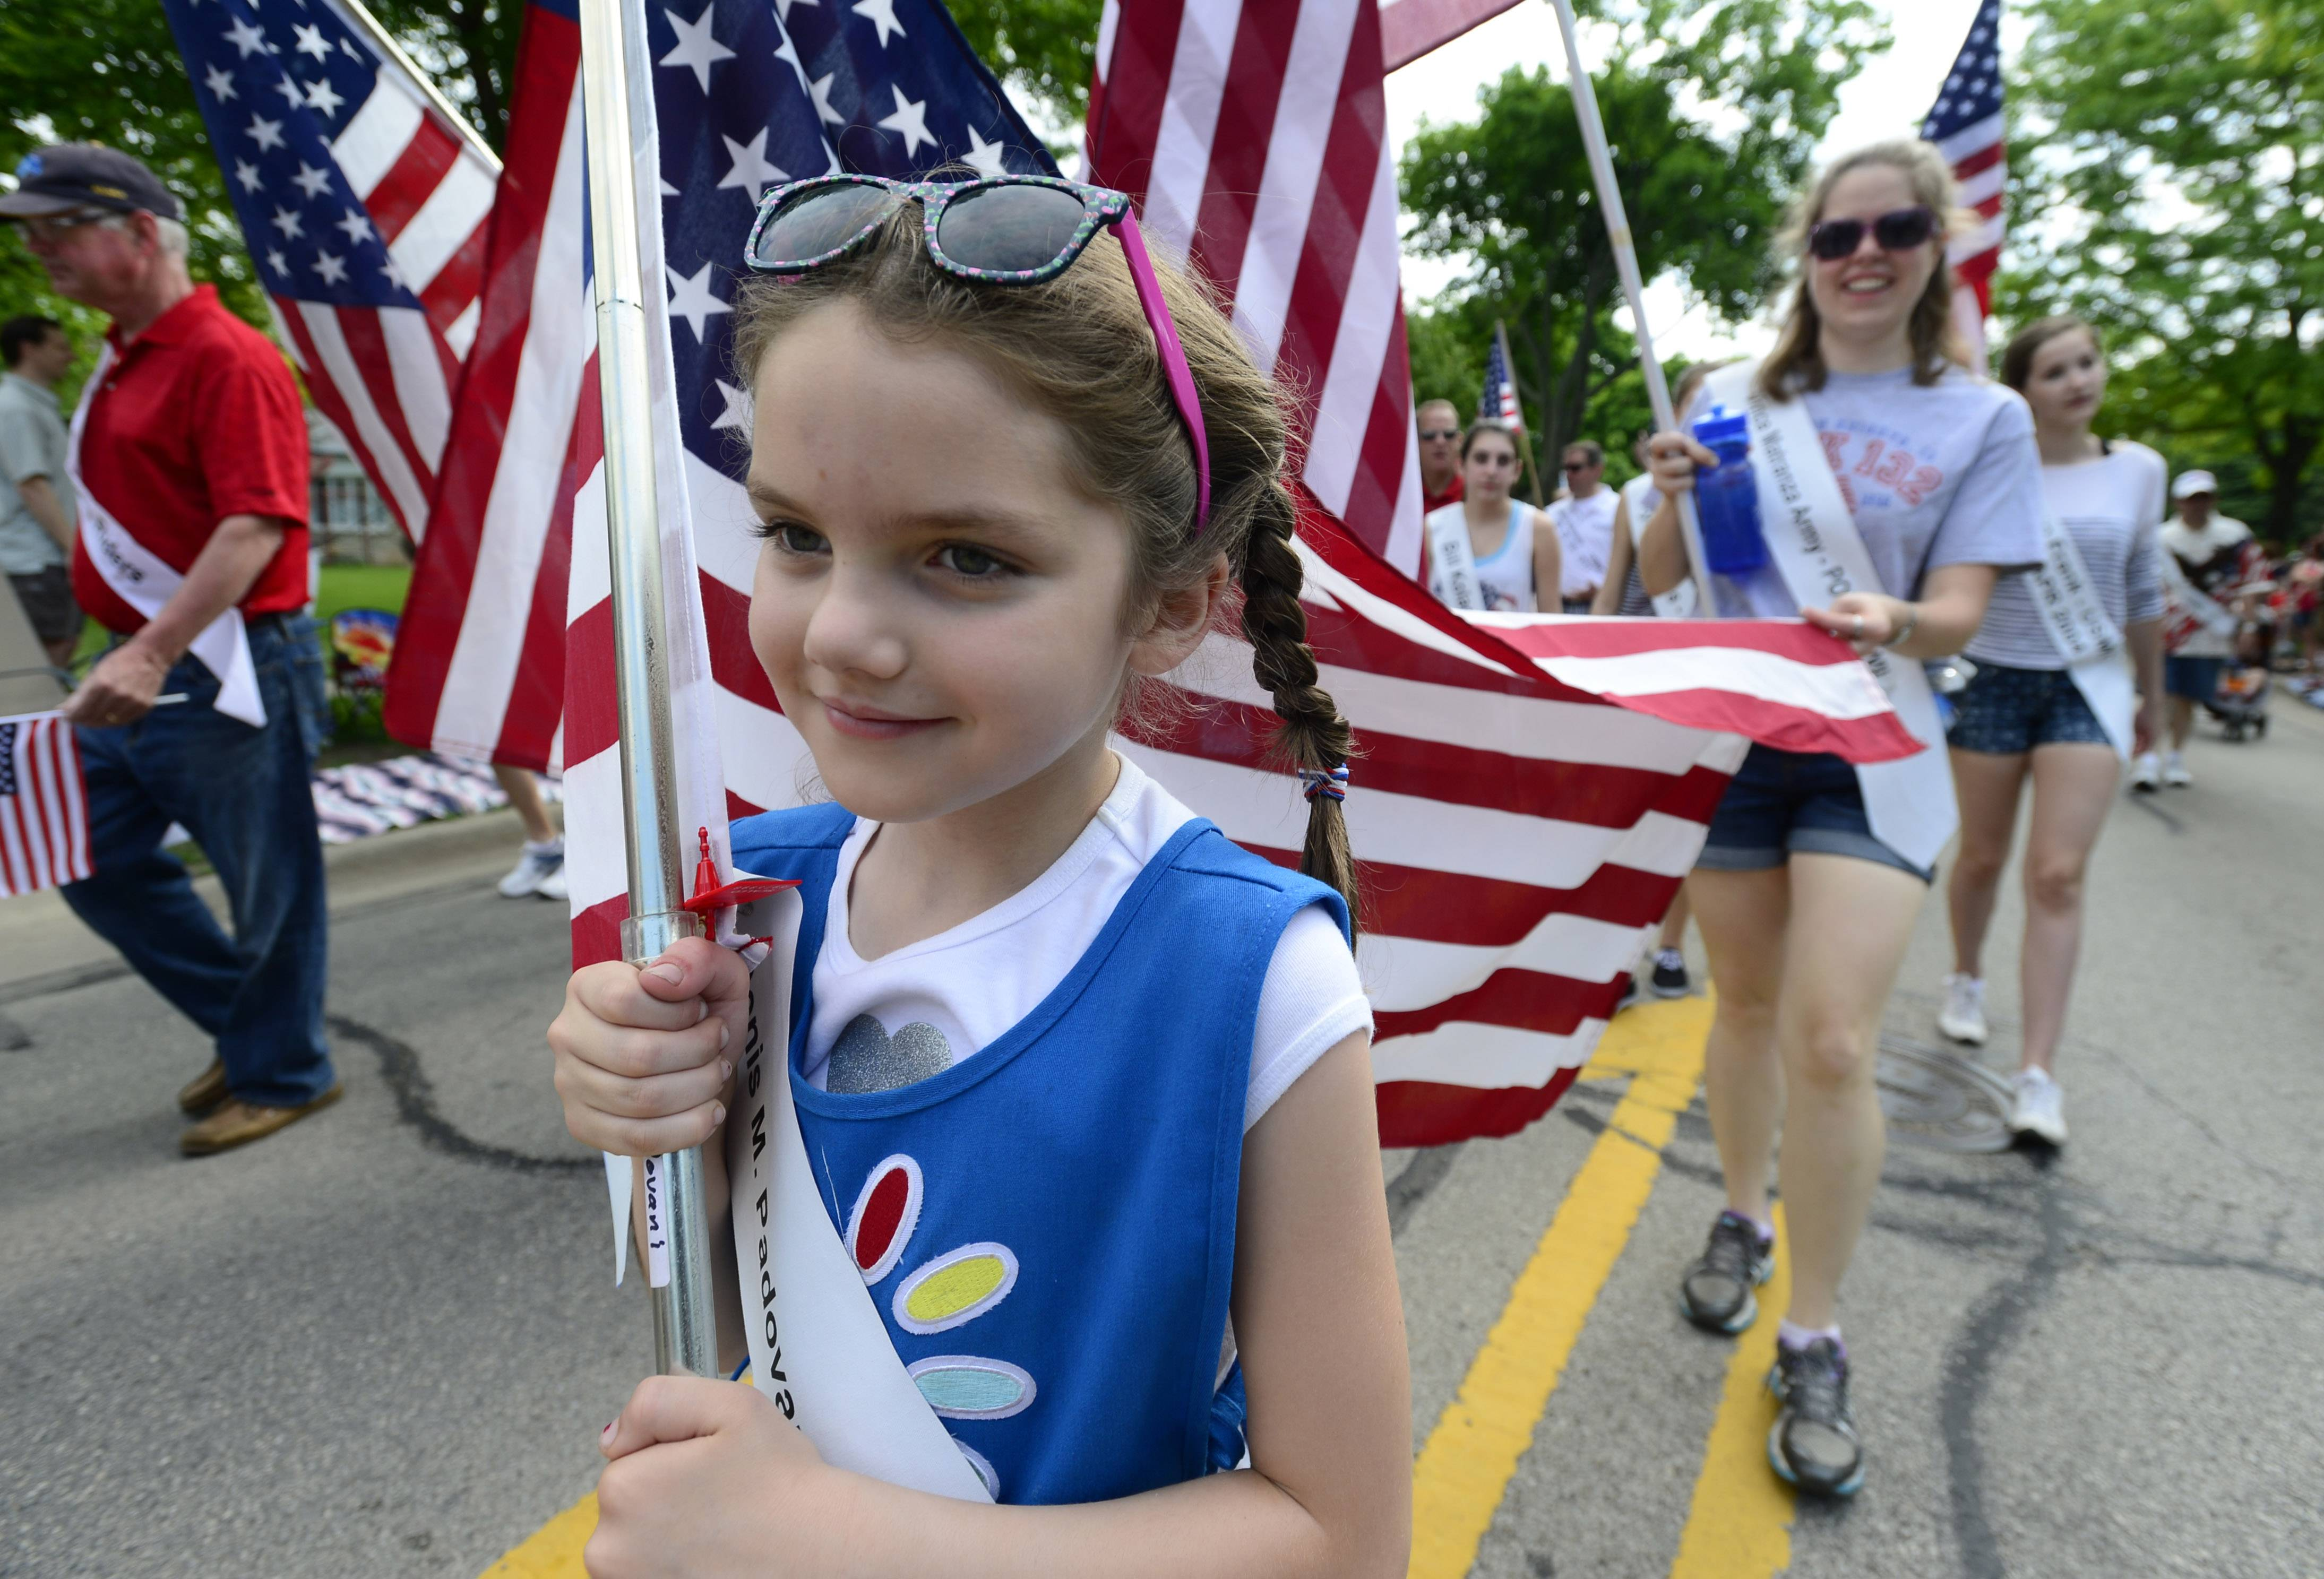 Emily Pawlak, 7, of Arlington Heights honors veterans by carrying the flag during the parade at the Arlington Heights Memorial Day event on Monday.